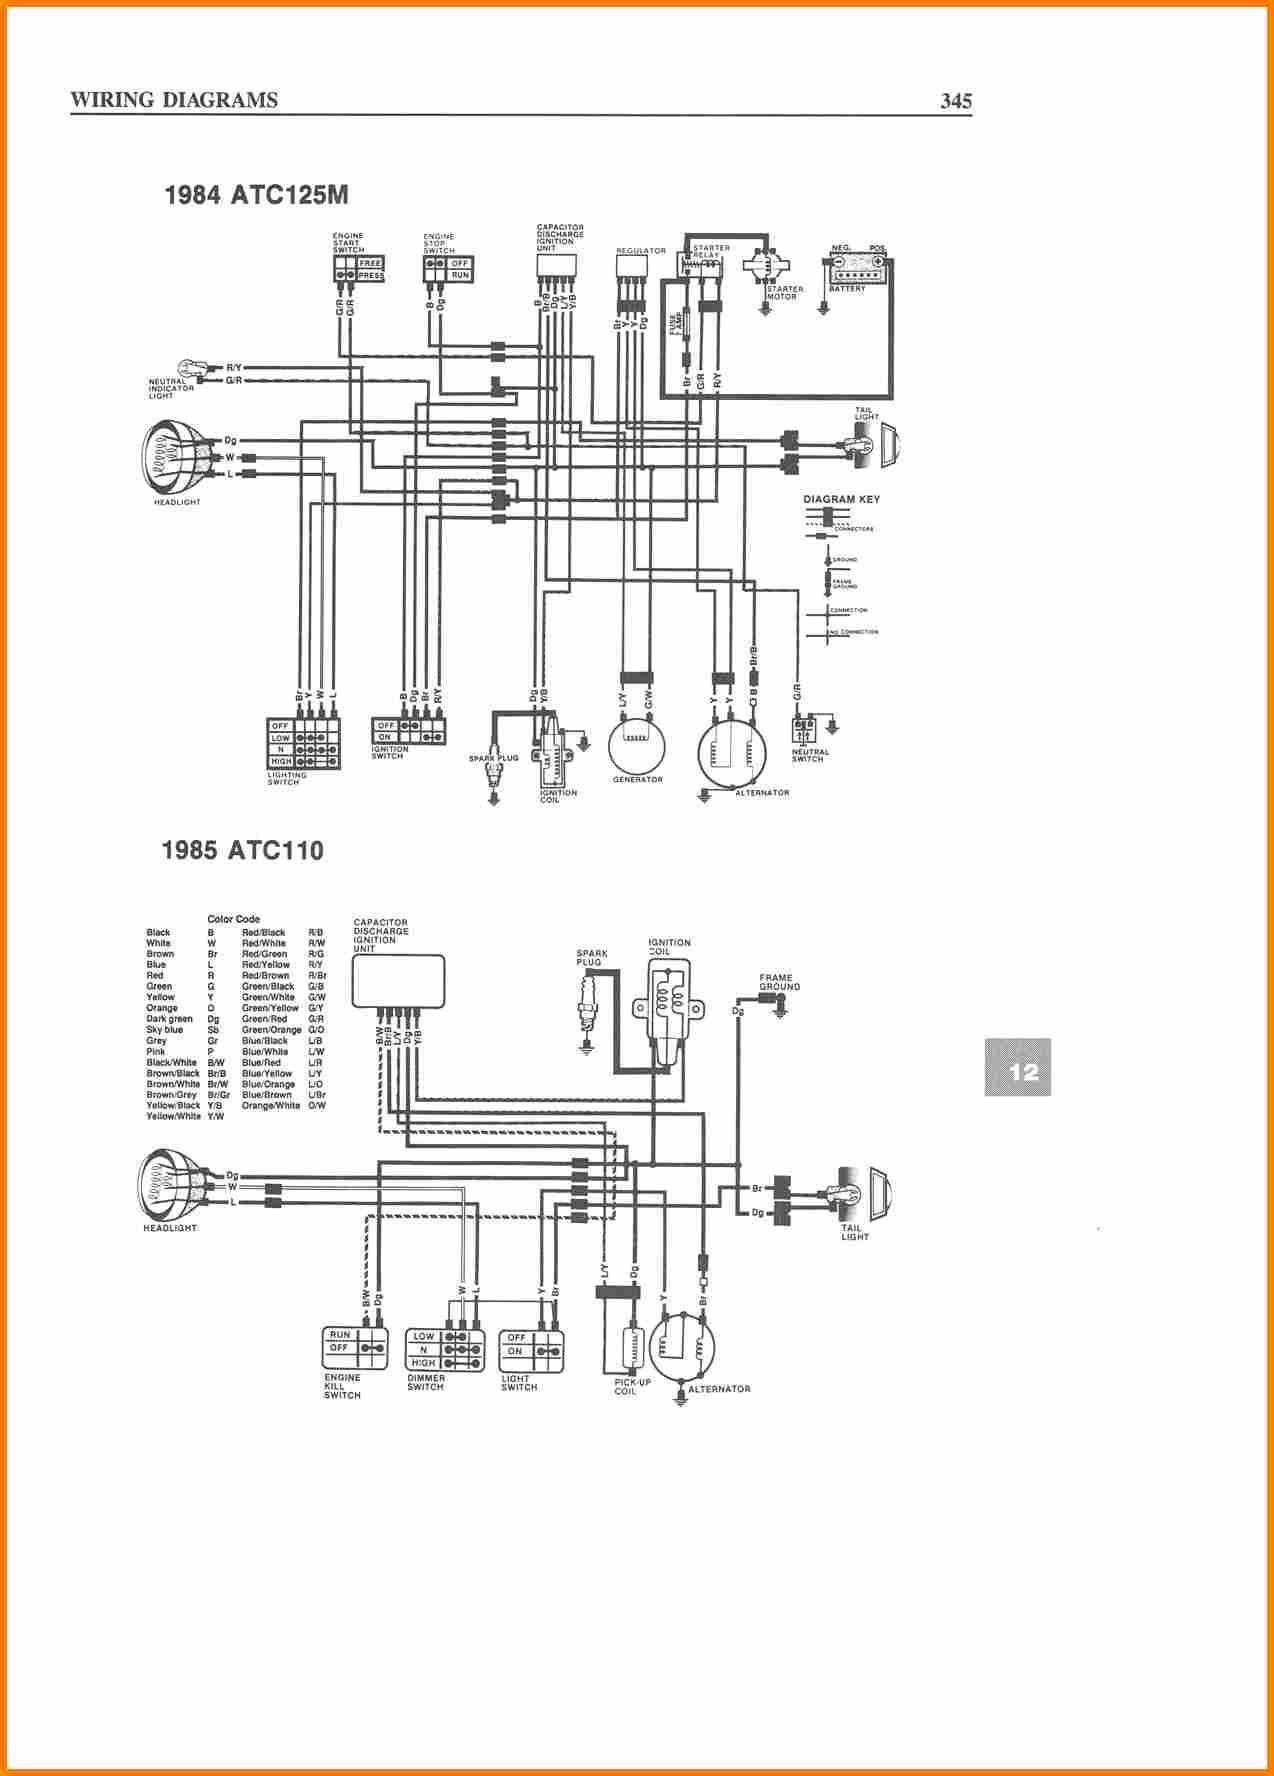 wiring diagram for tao tao 110cc 4 wheeler